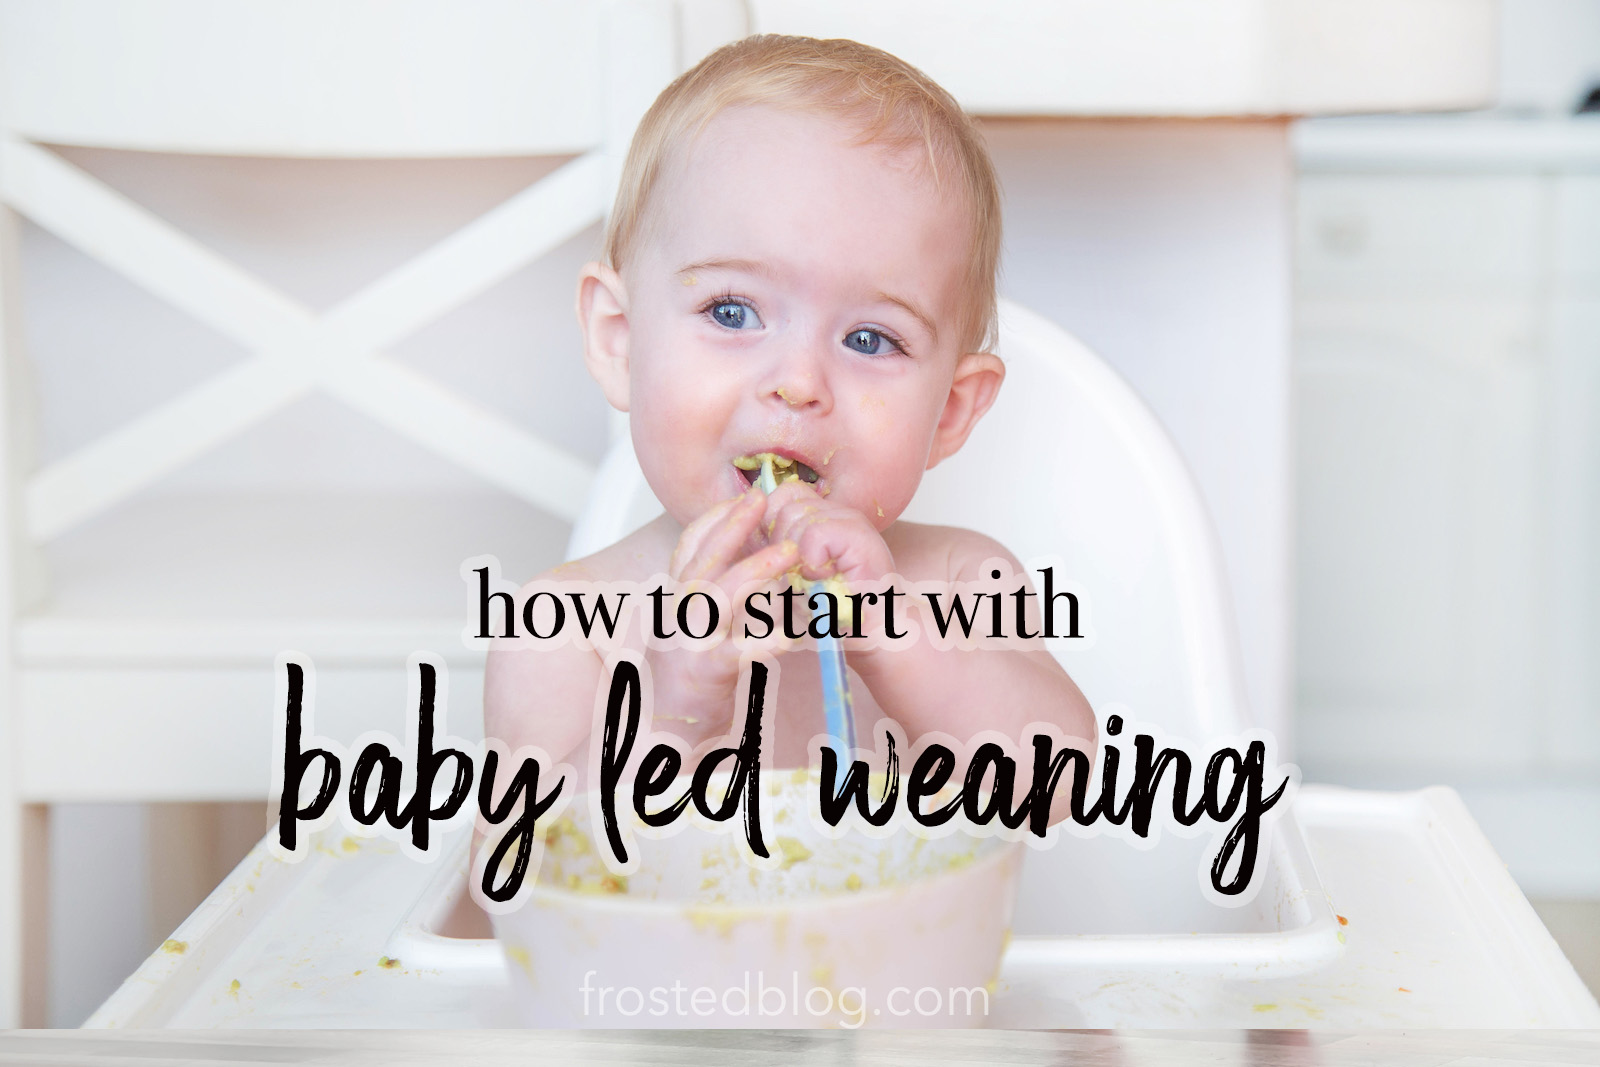 Baby led weaning foods and when to start blw